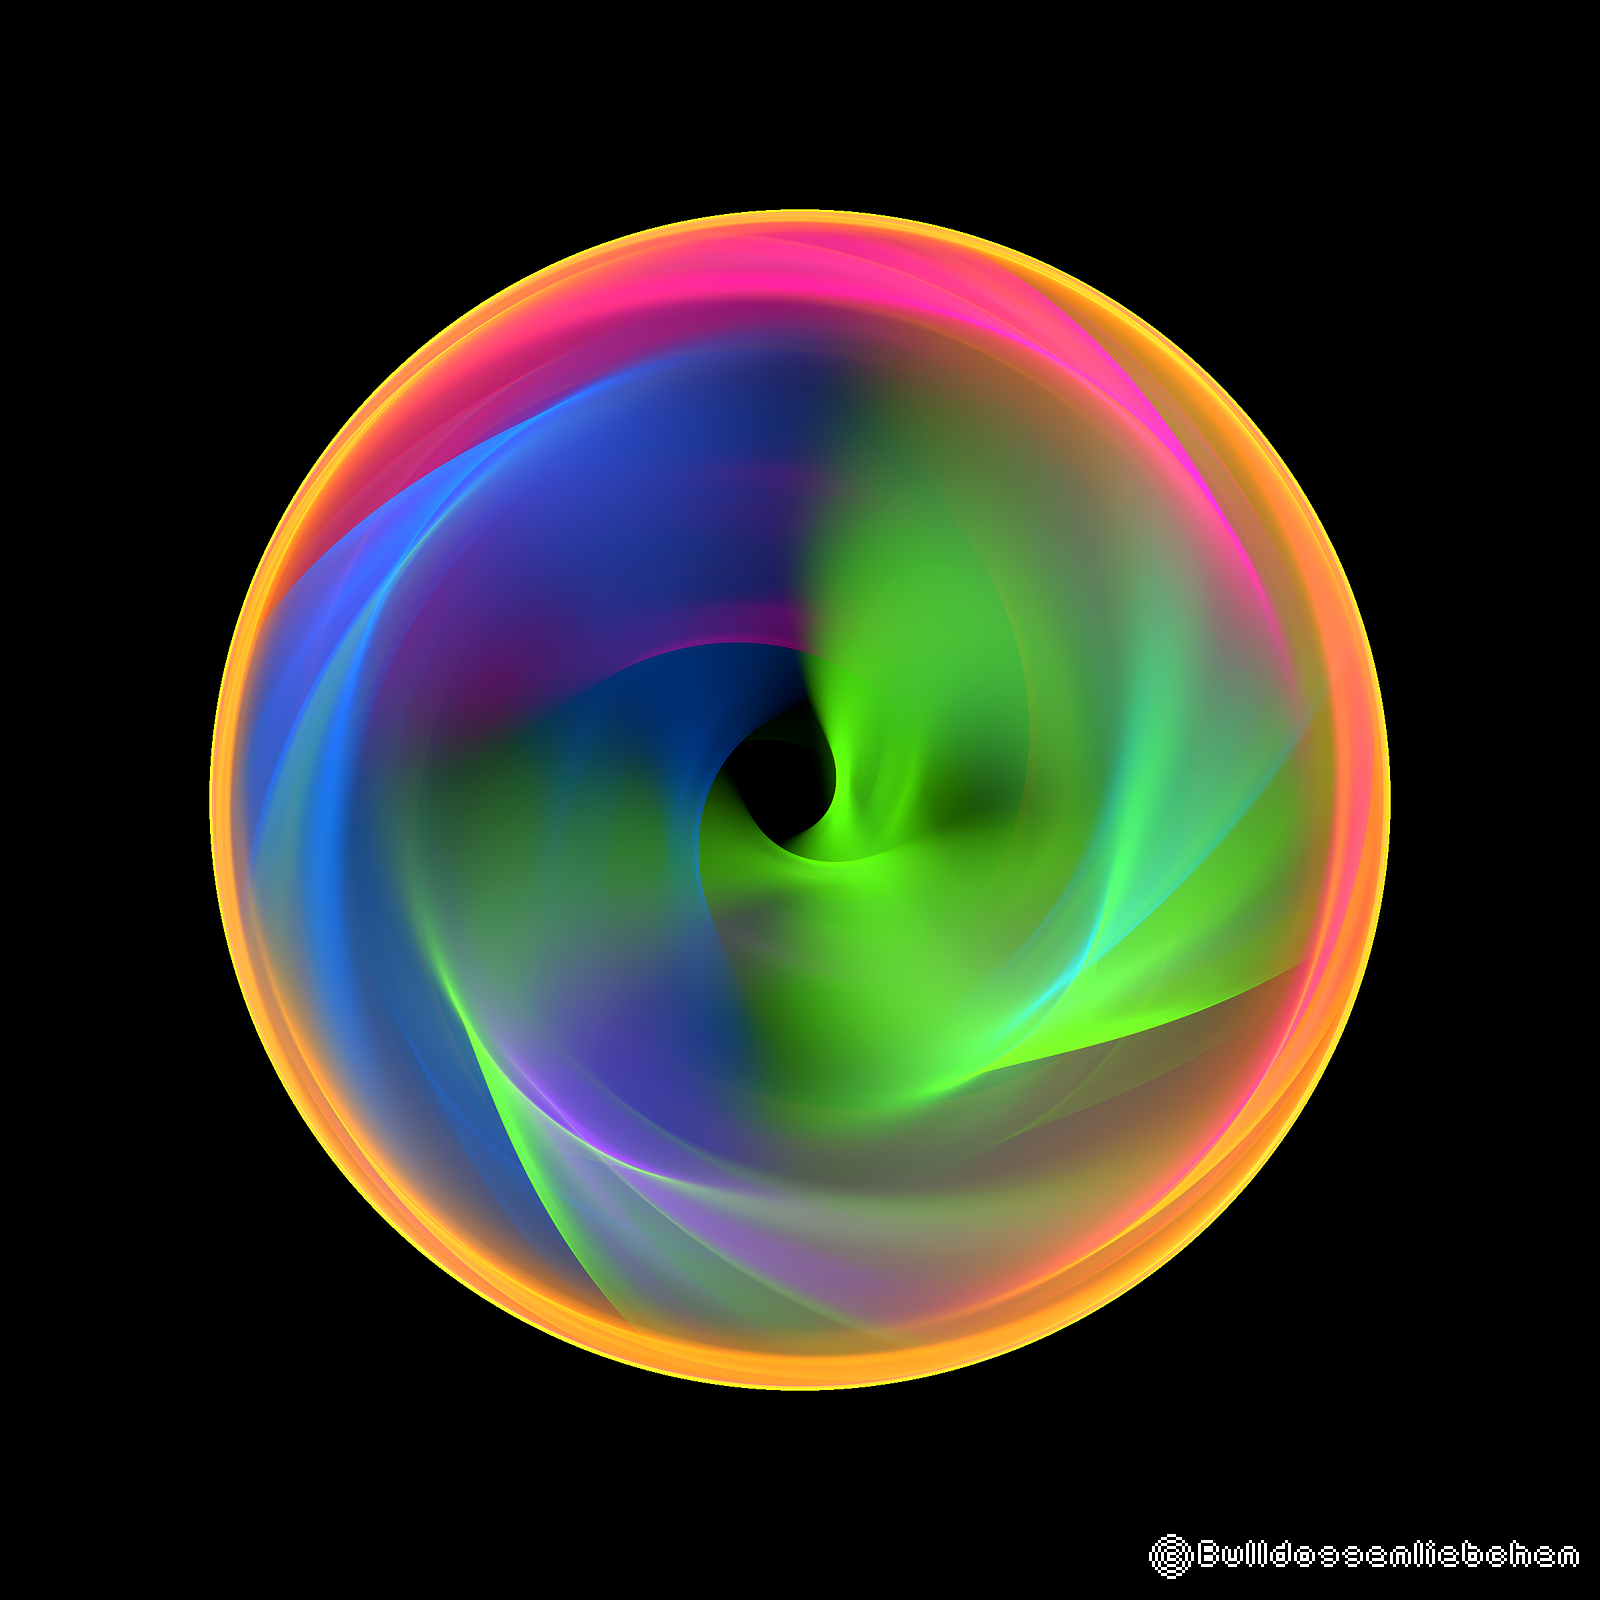 Wheel full of colors by Bulldoggenliebchen